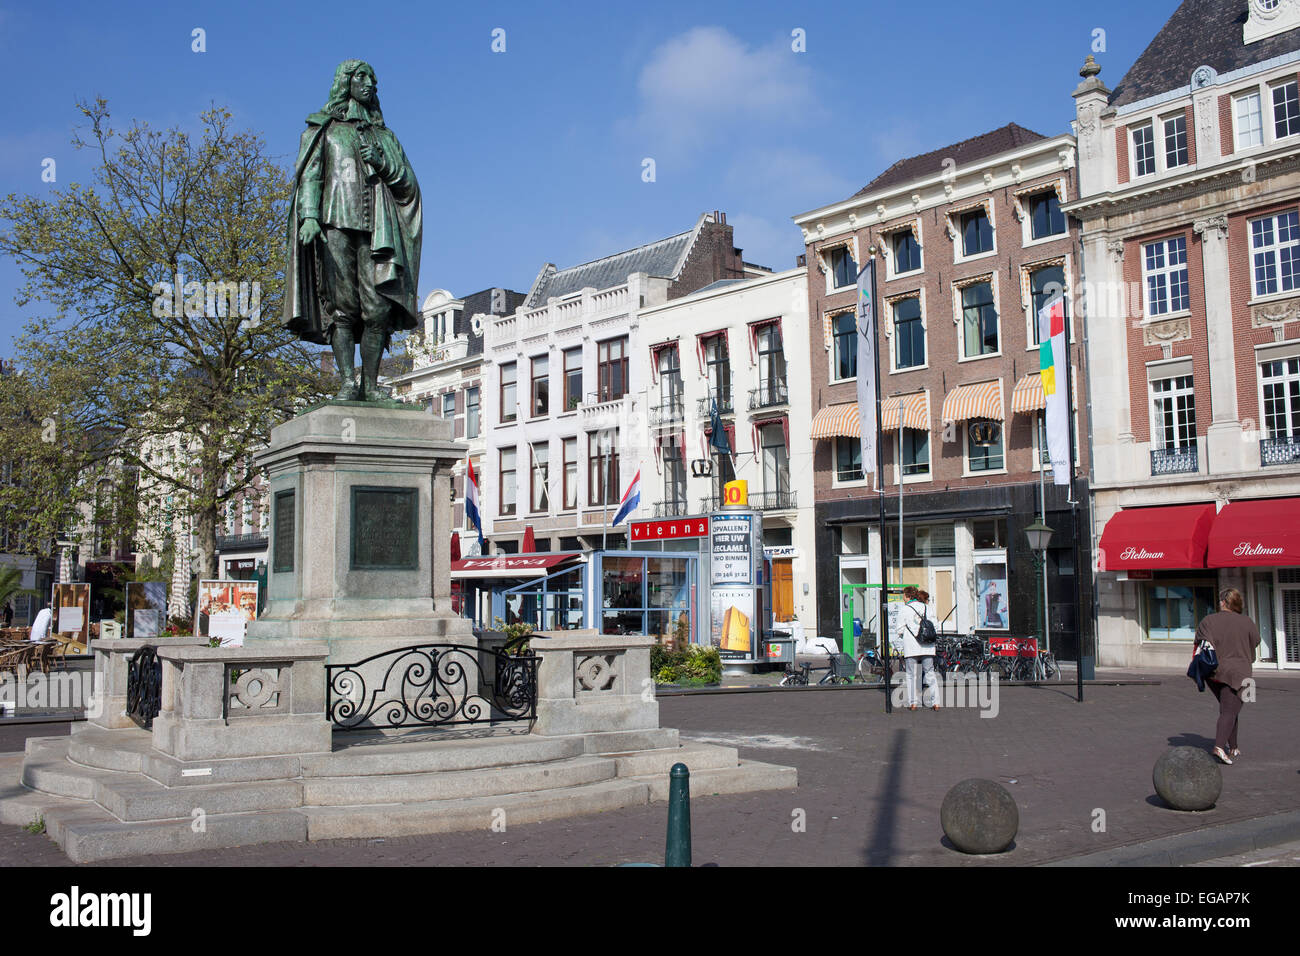 Statue of Johan de Witt (1625-1672) on The Square (De Plaats), city of Hague, Holland, Netherlands. - Stock Image